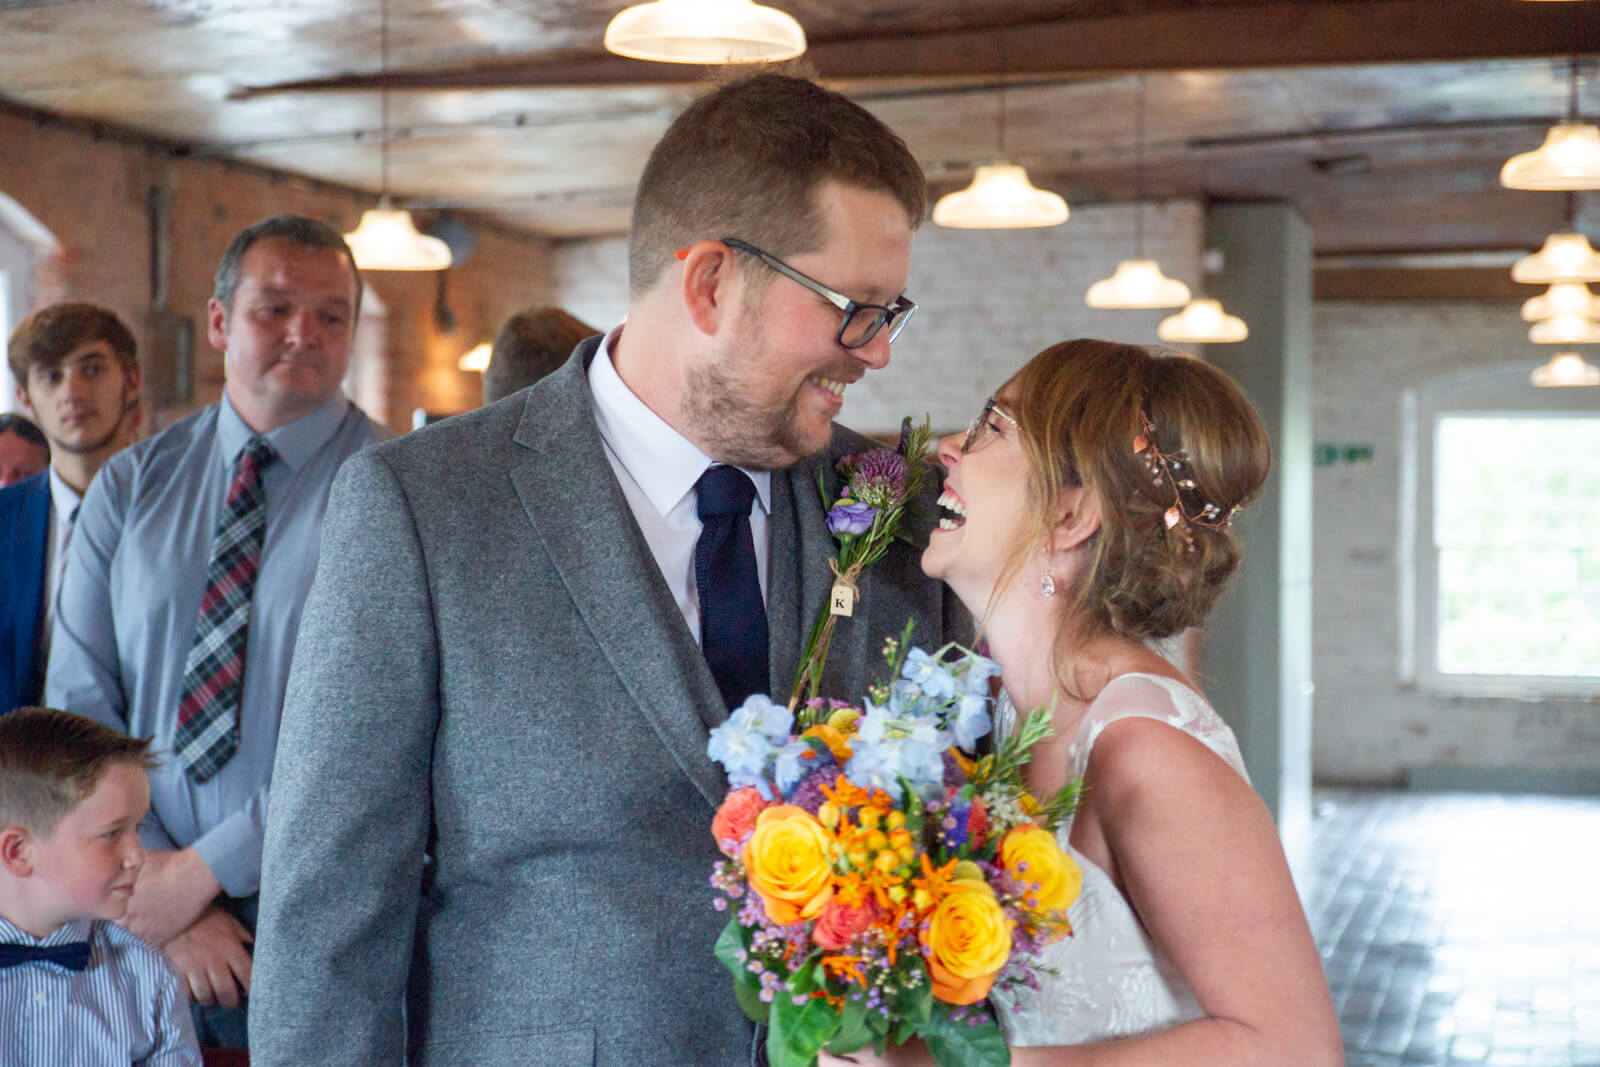 Bride and groom laugh together as they meet at the alter